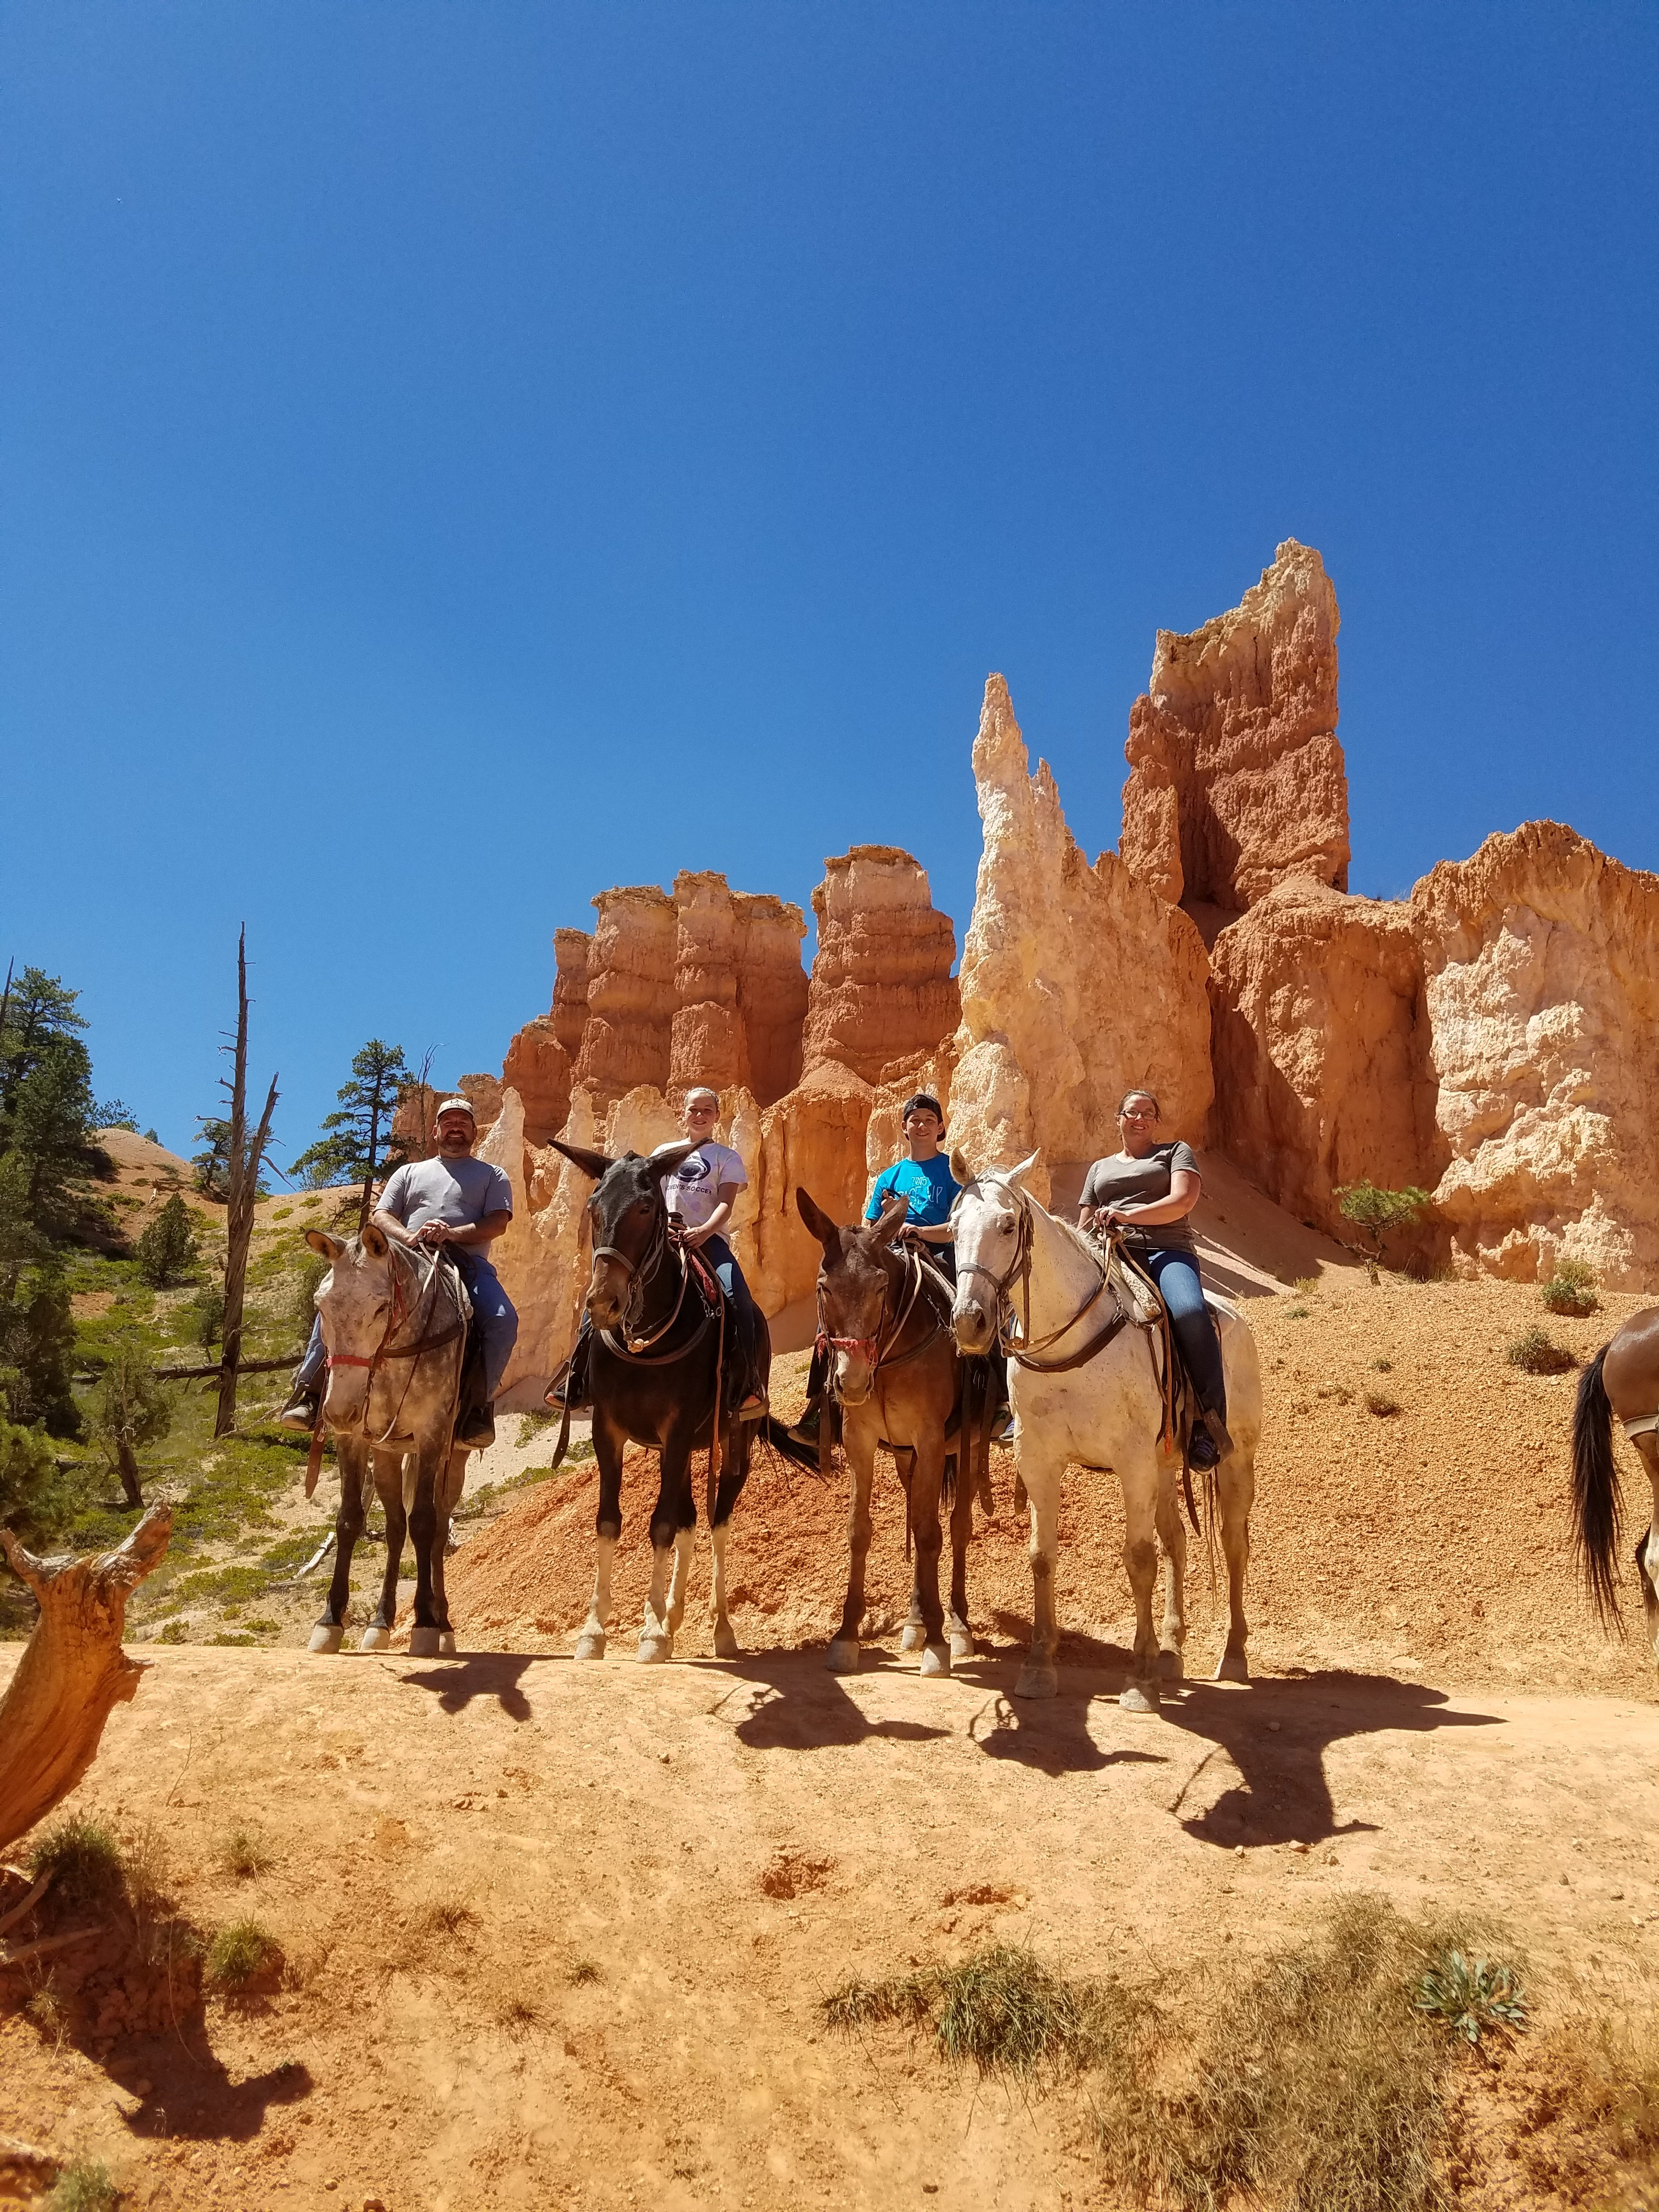 Riding horses and donkeys through Bryce Canyon